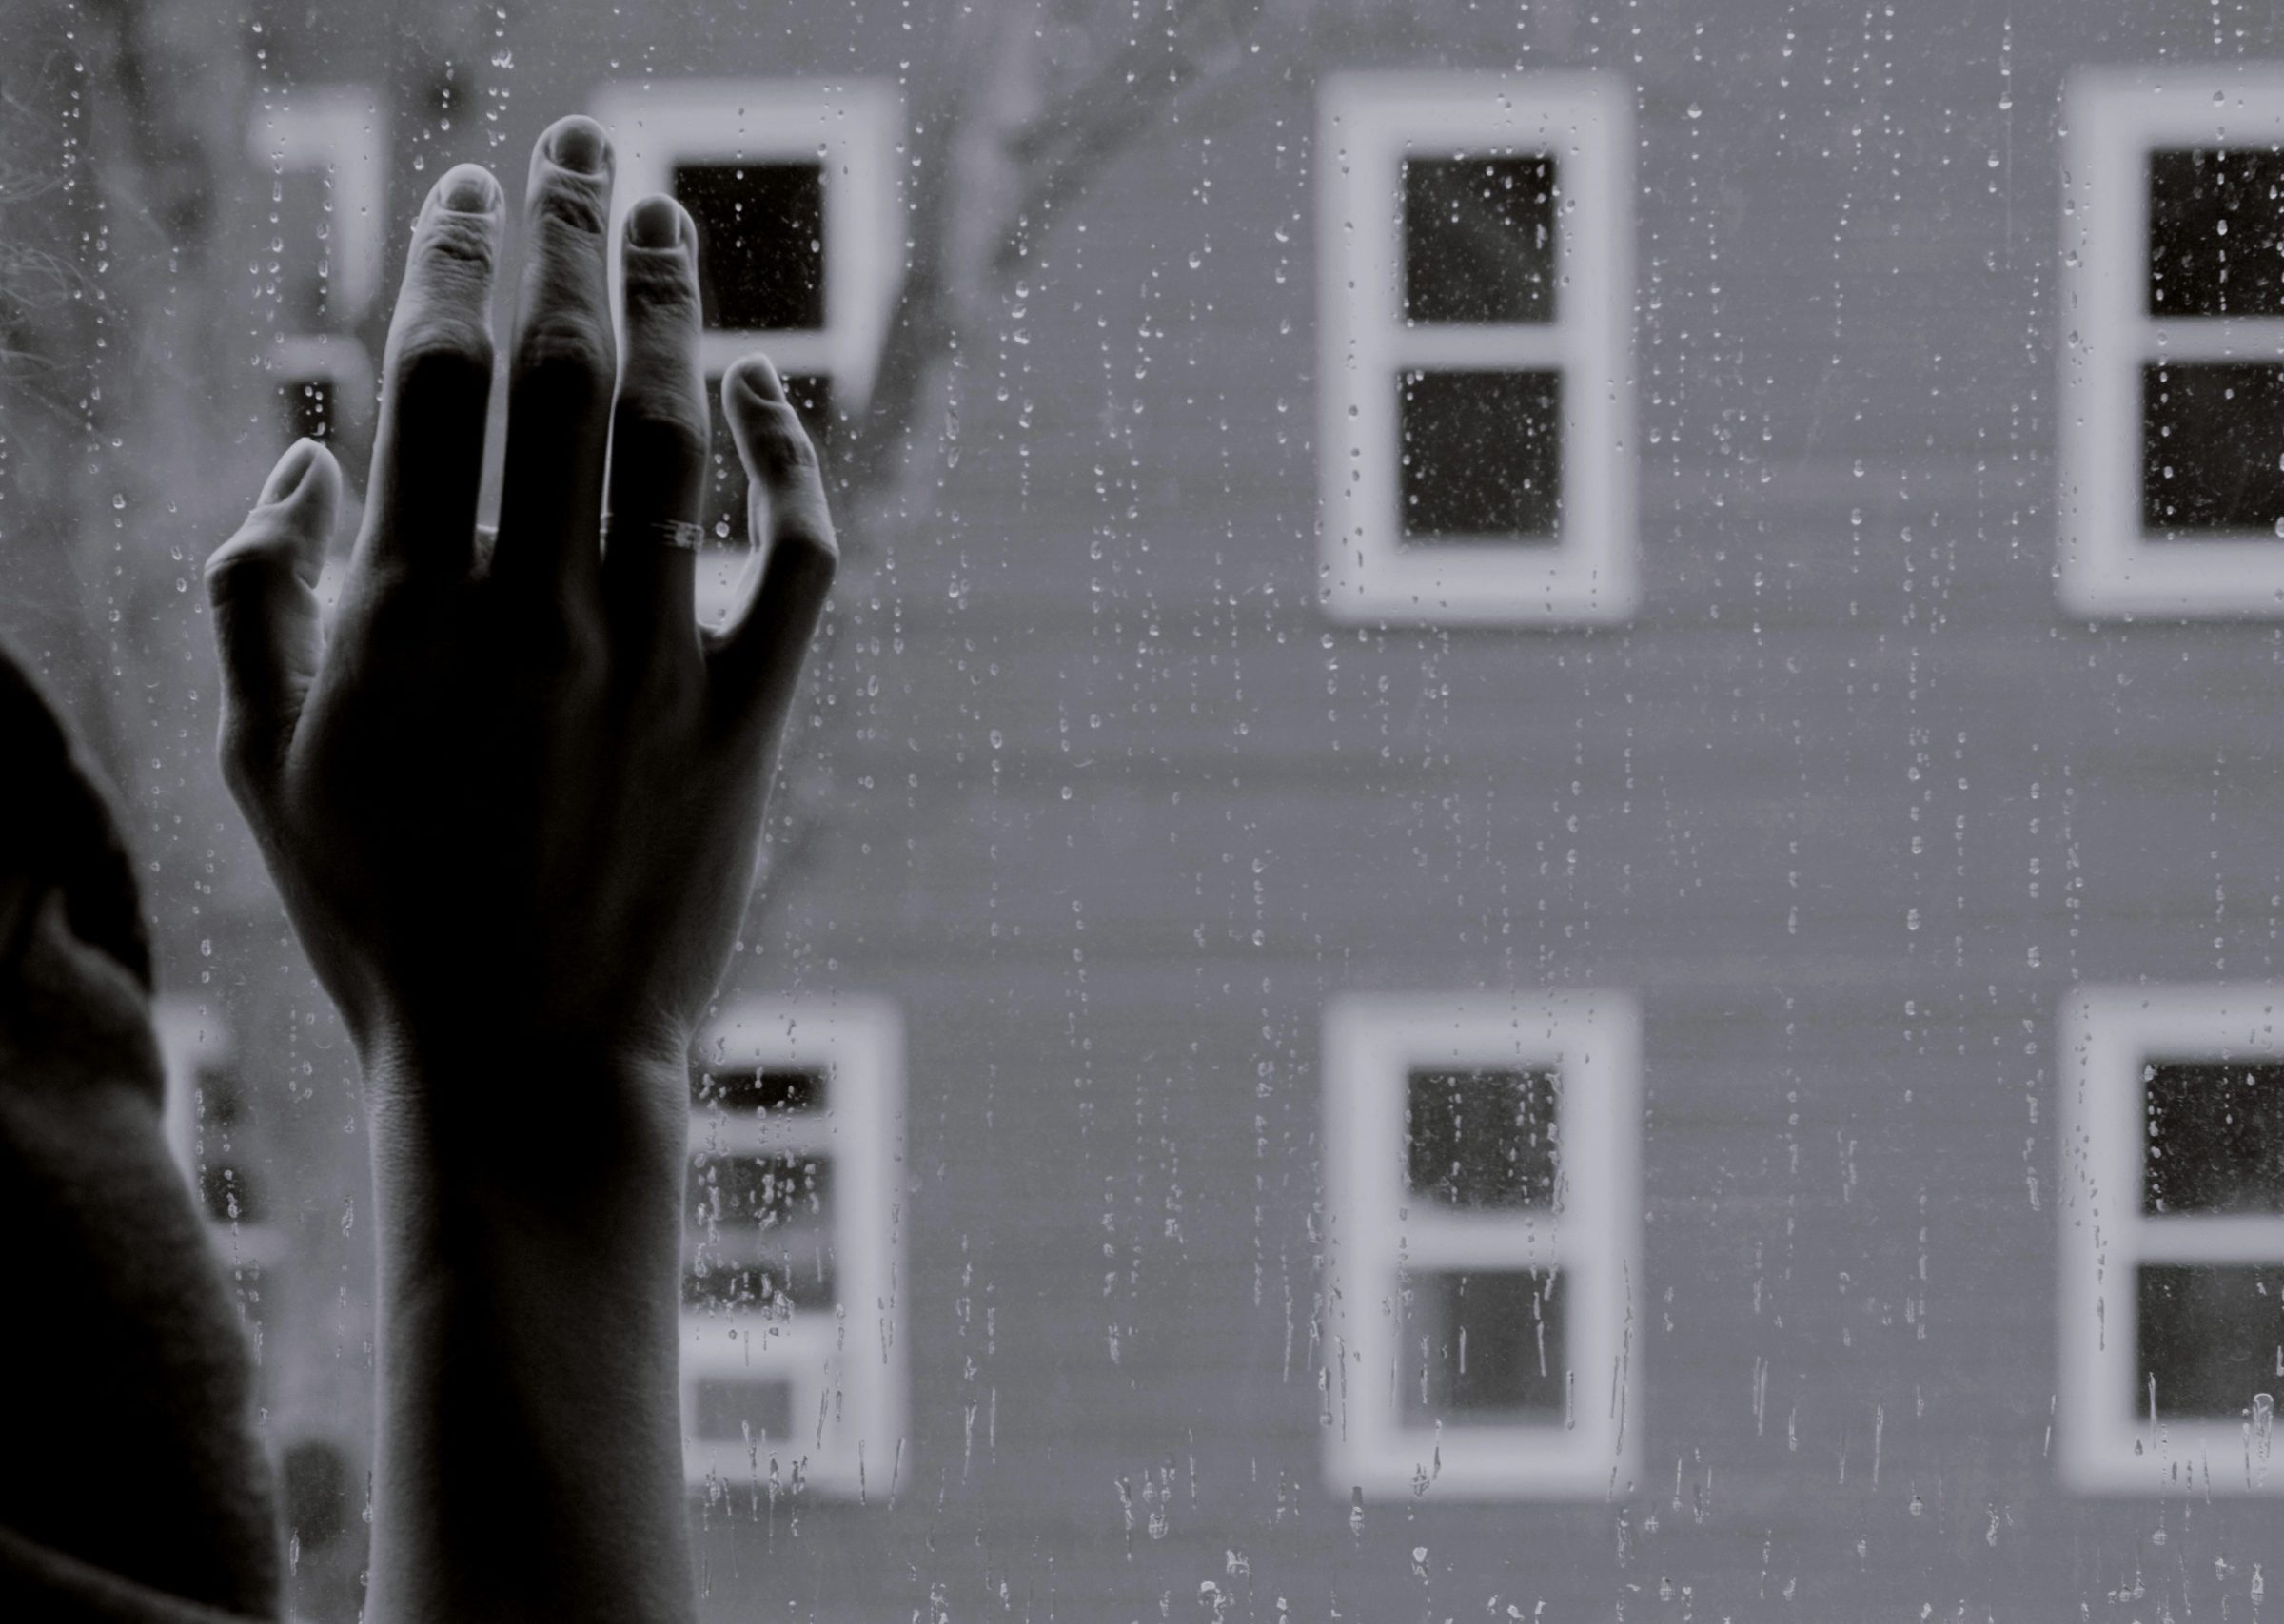 lonely hand against window pane during social distancing